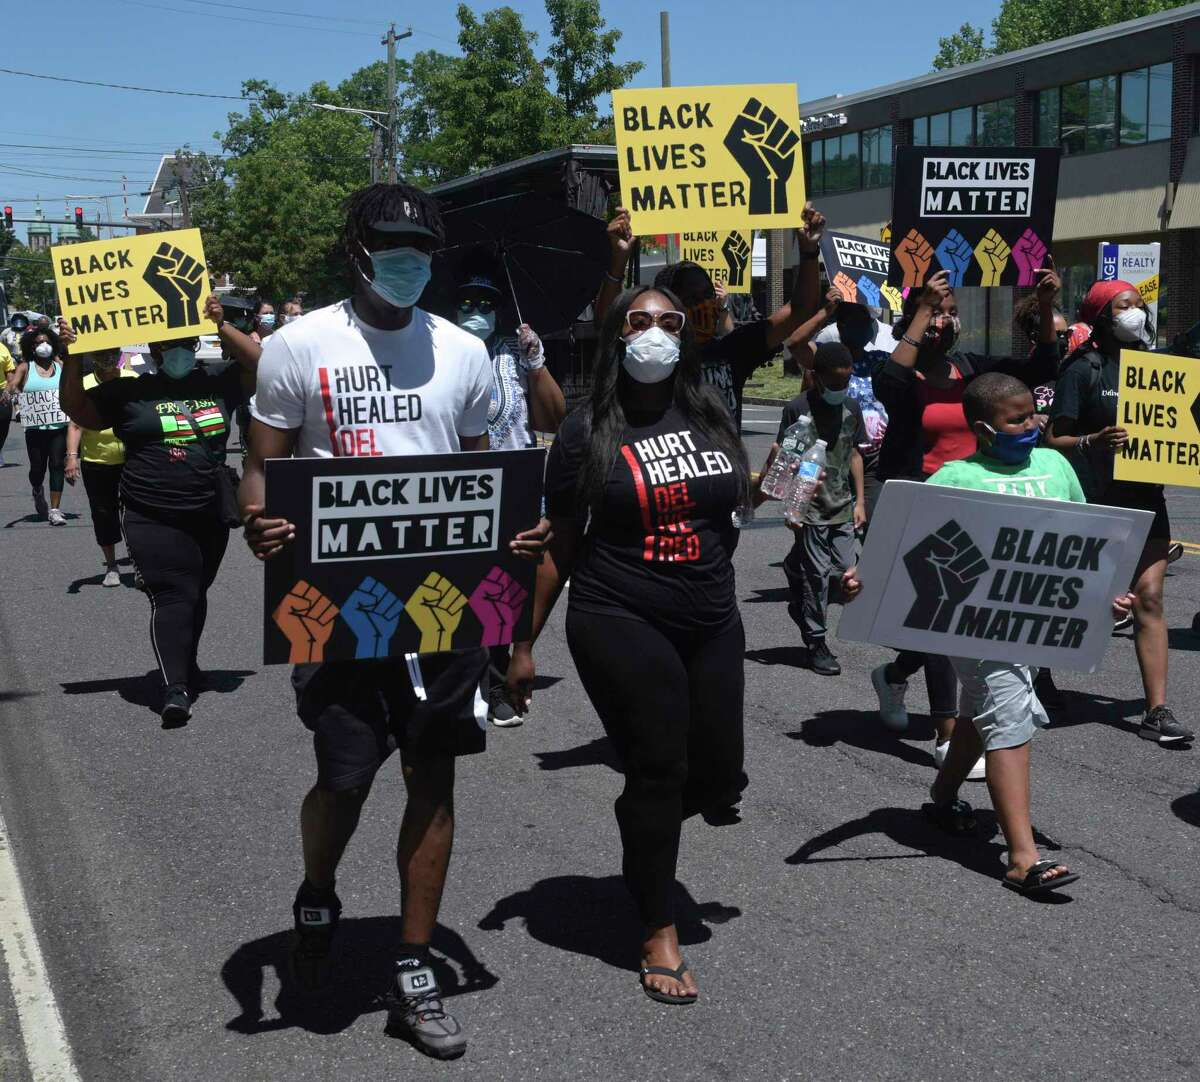 A prayer walk in protest of racial injustice to mark one month since the slaying of George Floyd in Minneapolis, went from the Police HQ to City Hall mid-day, Thursday, June 25, 2020, in Danbury, Conn. It was led by the Rev. Leroy Parker, pastor of New Hope Baptist Church.